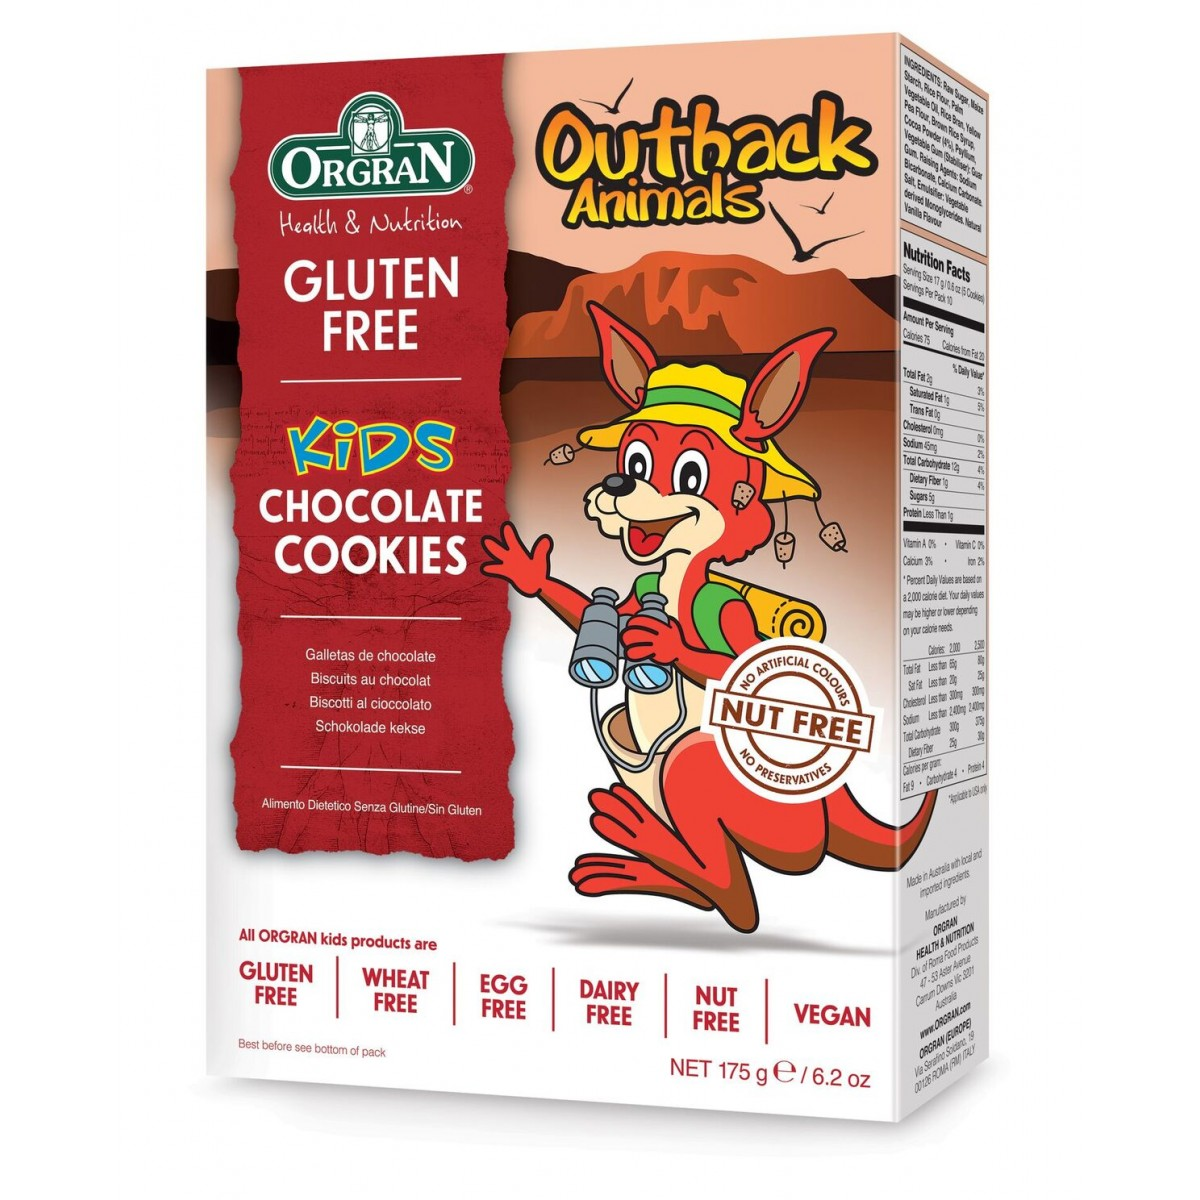 Outback Animals Chocolate Cookies